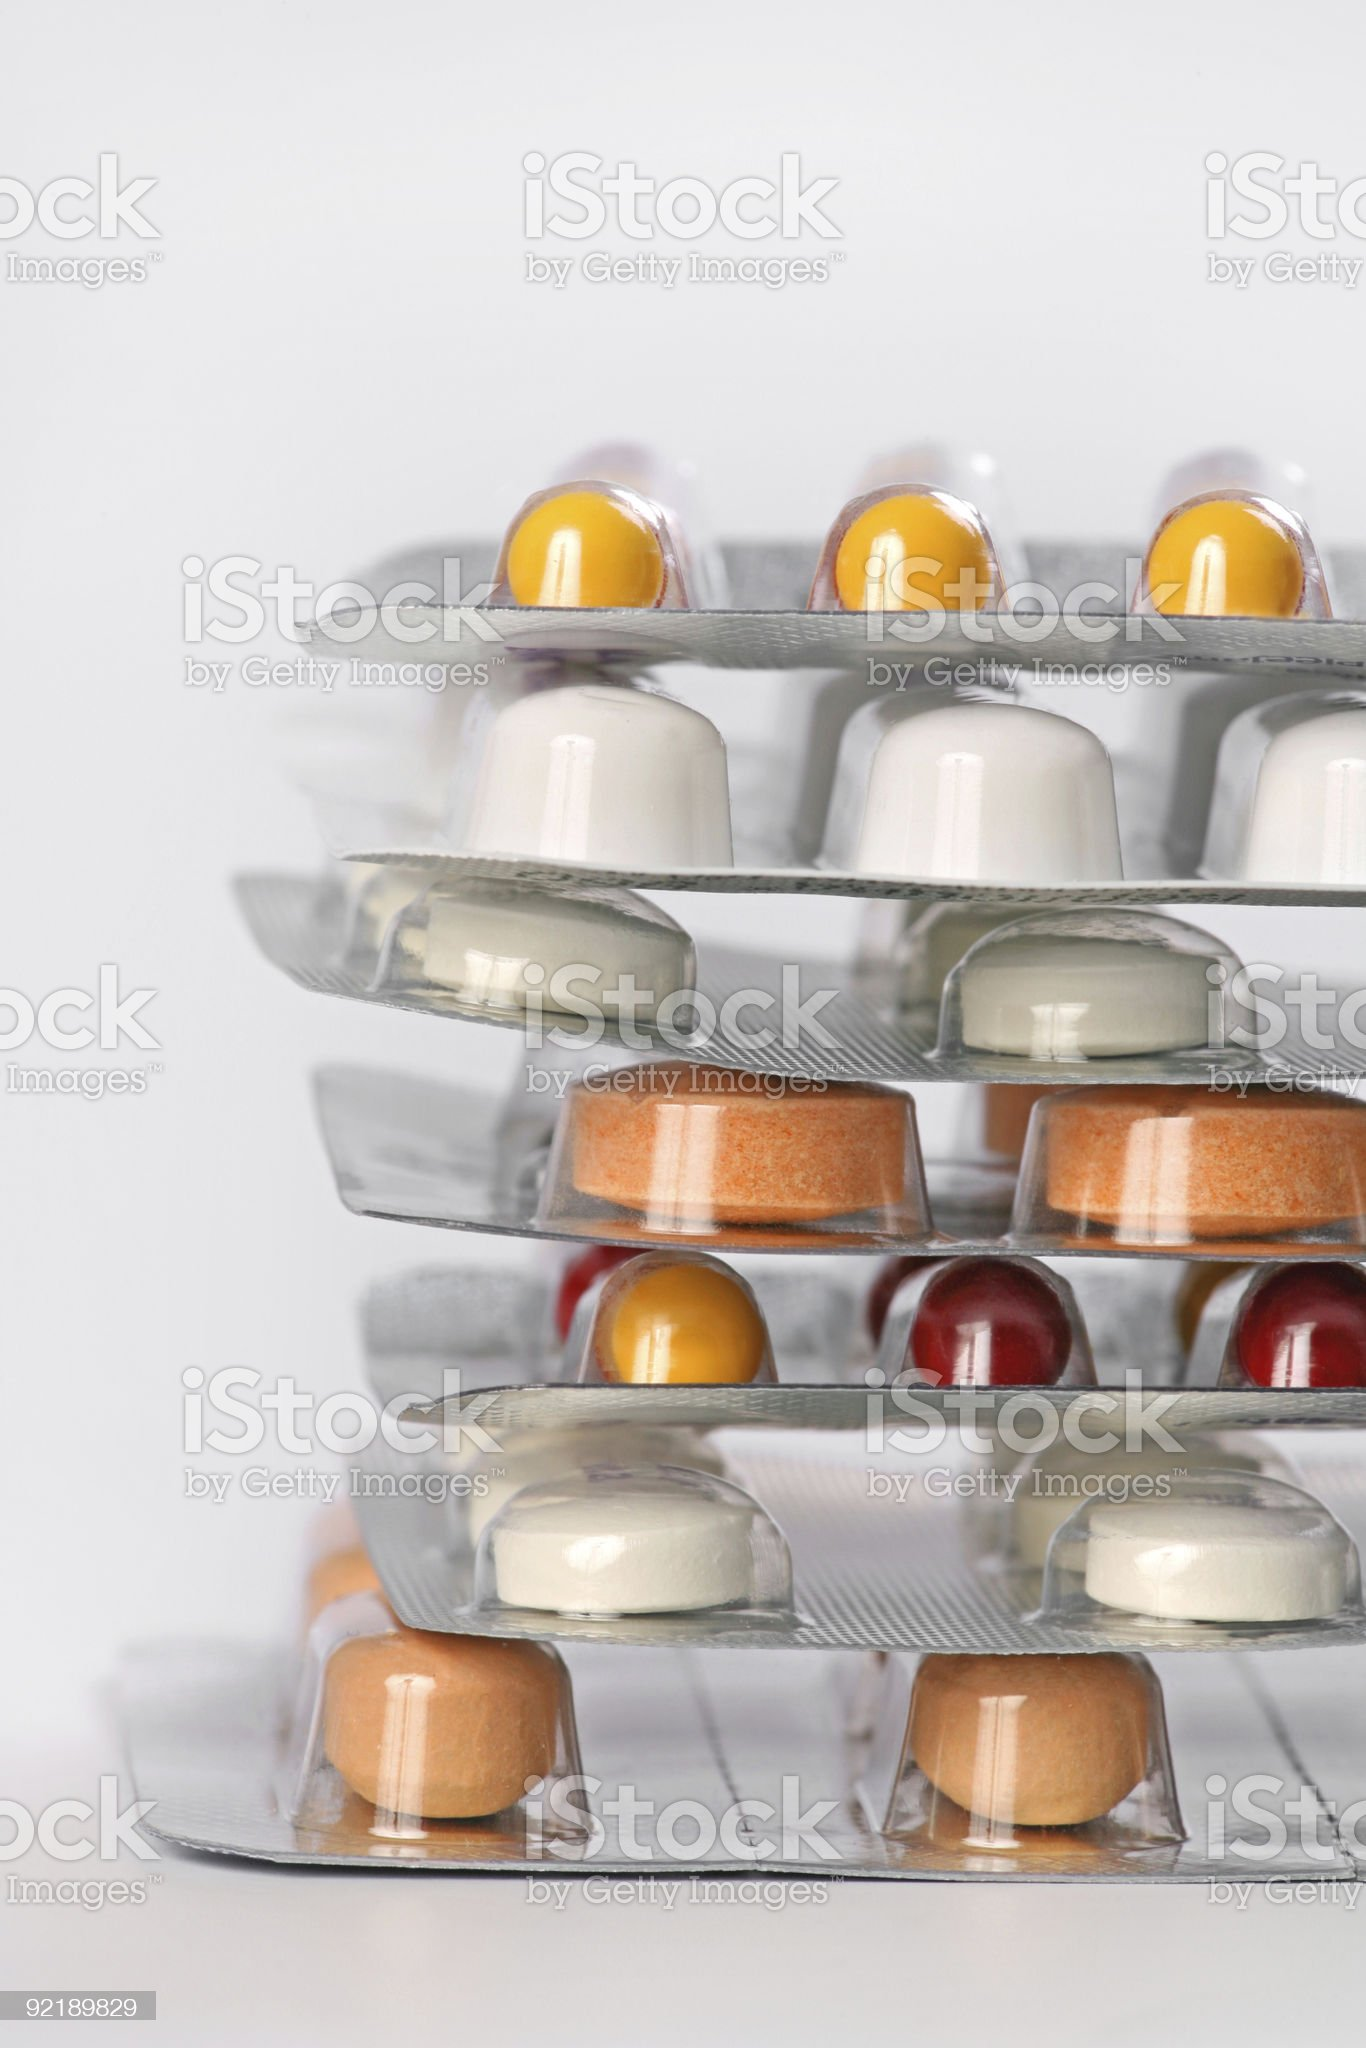 pills close up royalty-free stock photo